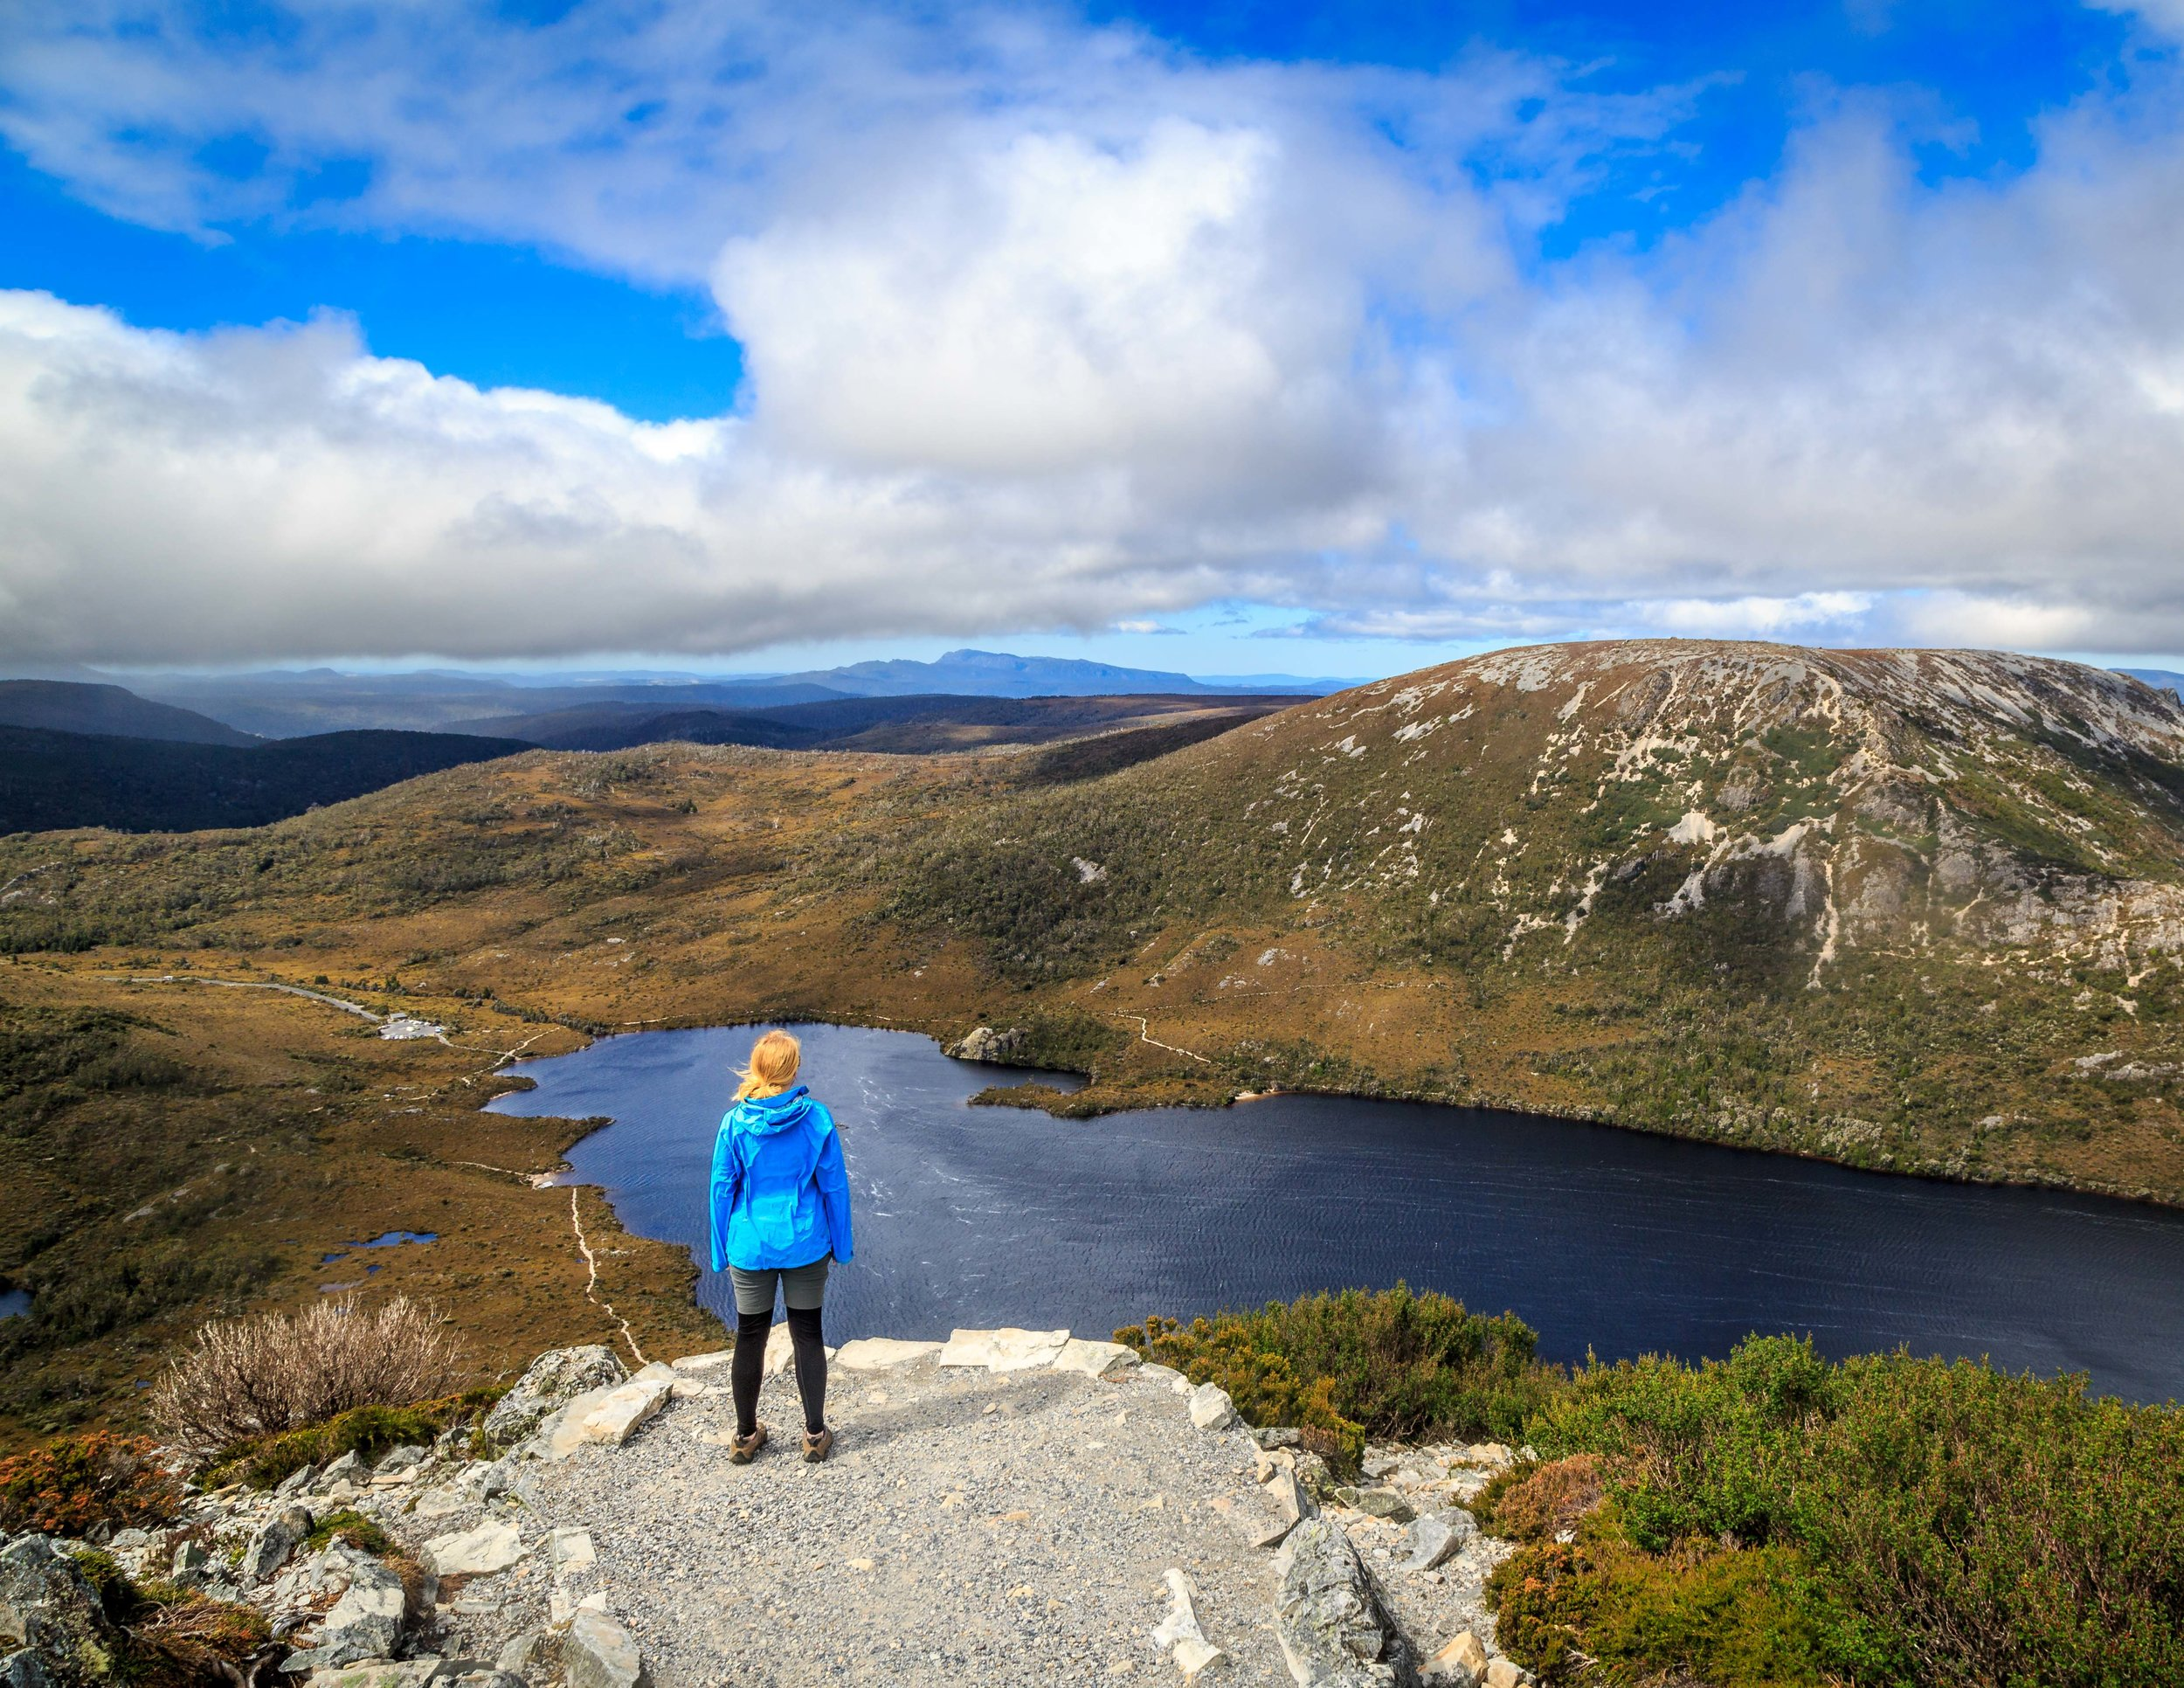 Must-see places in Australia, Cradle Mountain